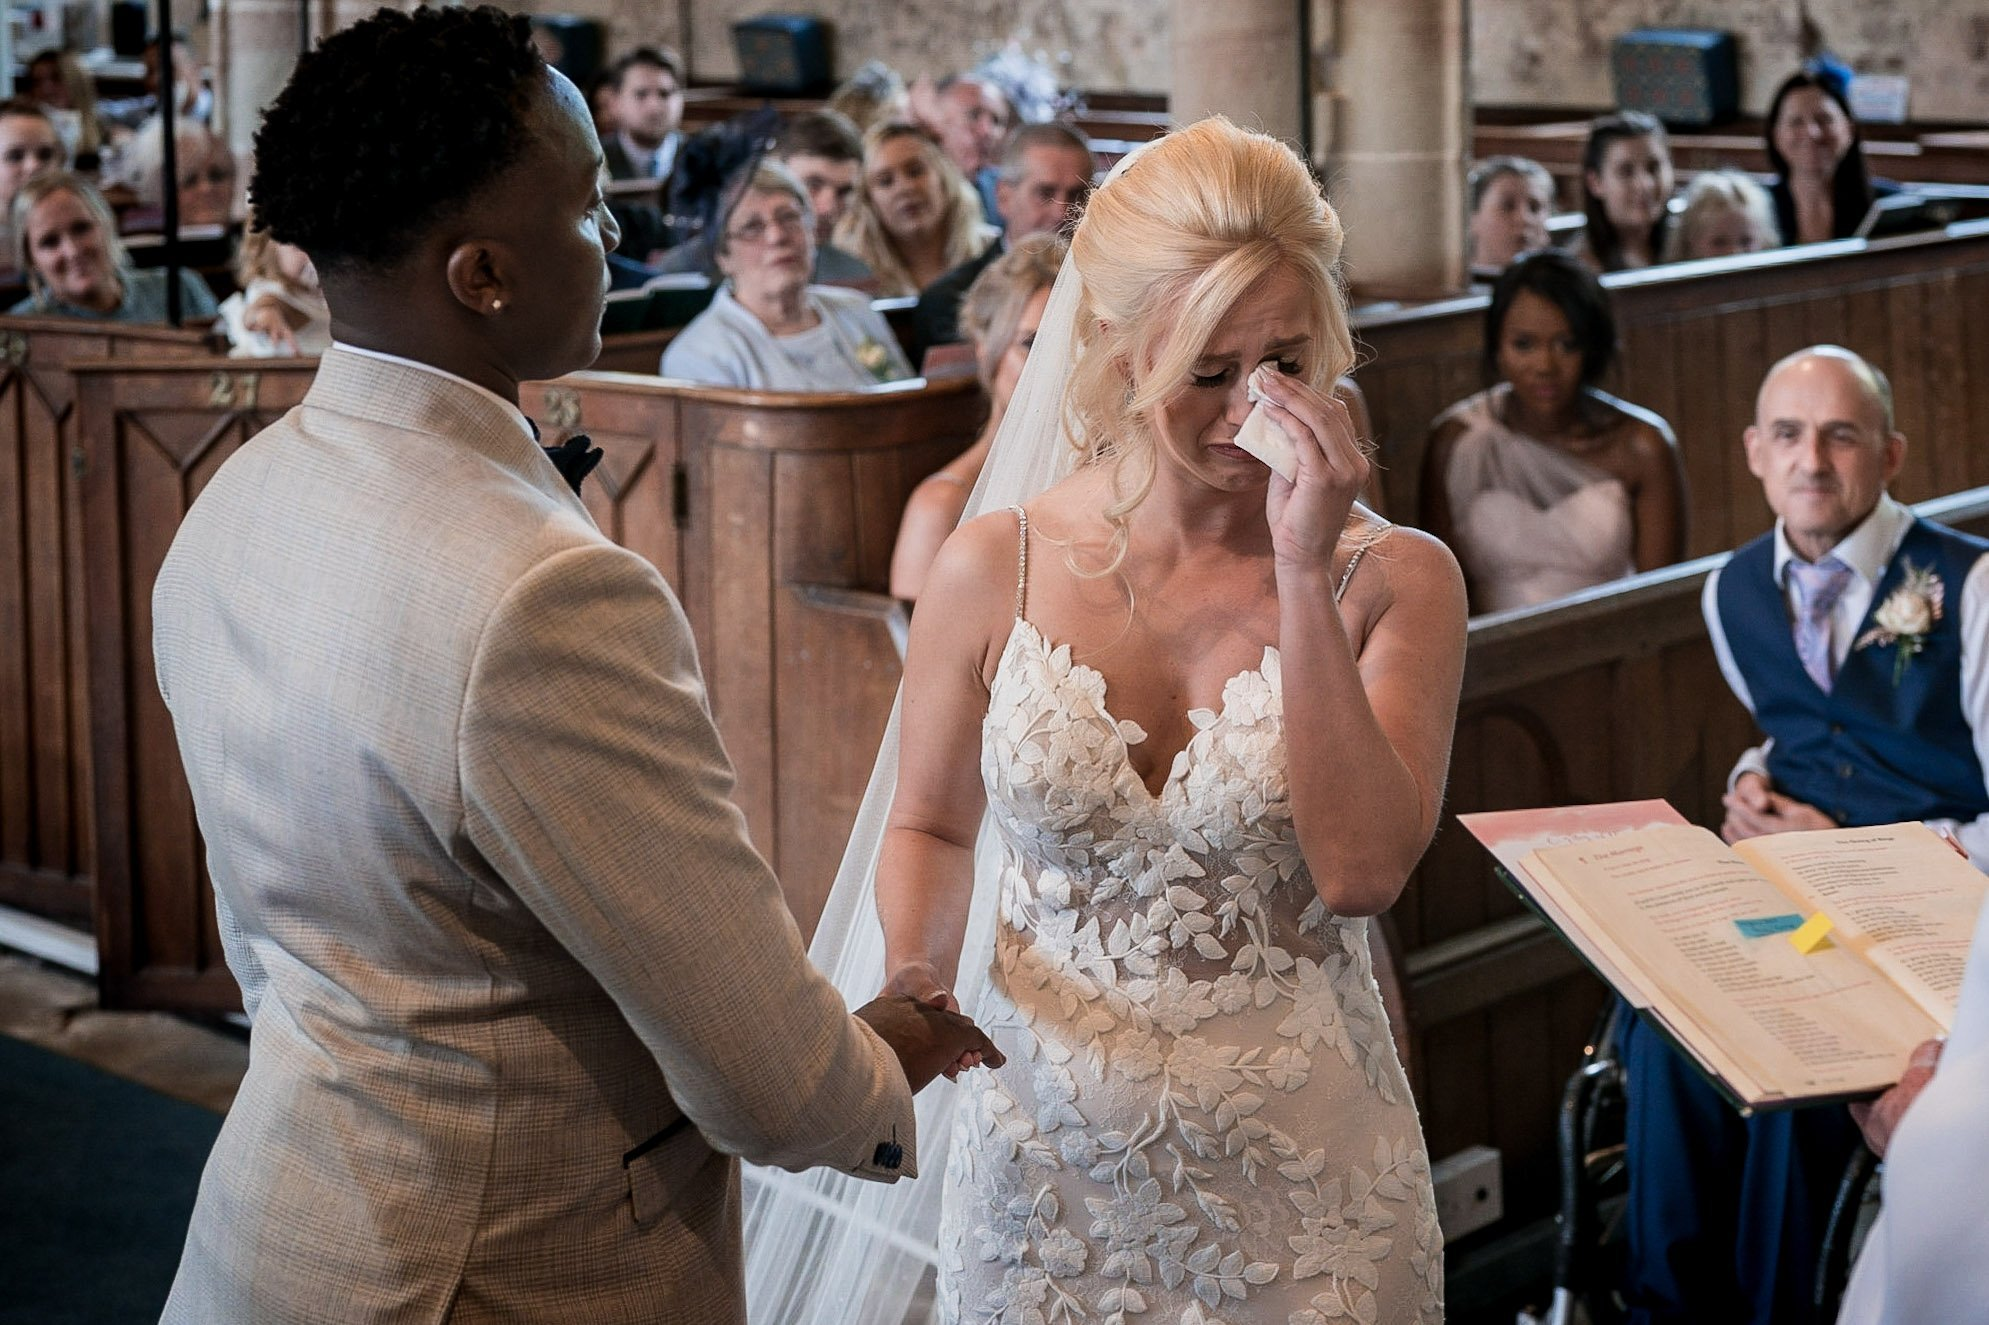 Your Favourite Frame YFFUK Mwasuku St Michaels Church Appleby Magna bride dabbing away tears with a borrowed tissue as the vows get too emotional father looking on from behind proud as punch